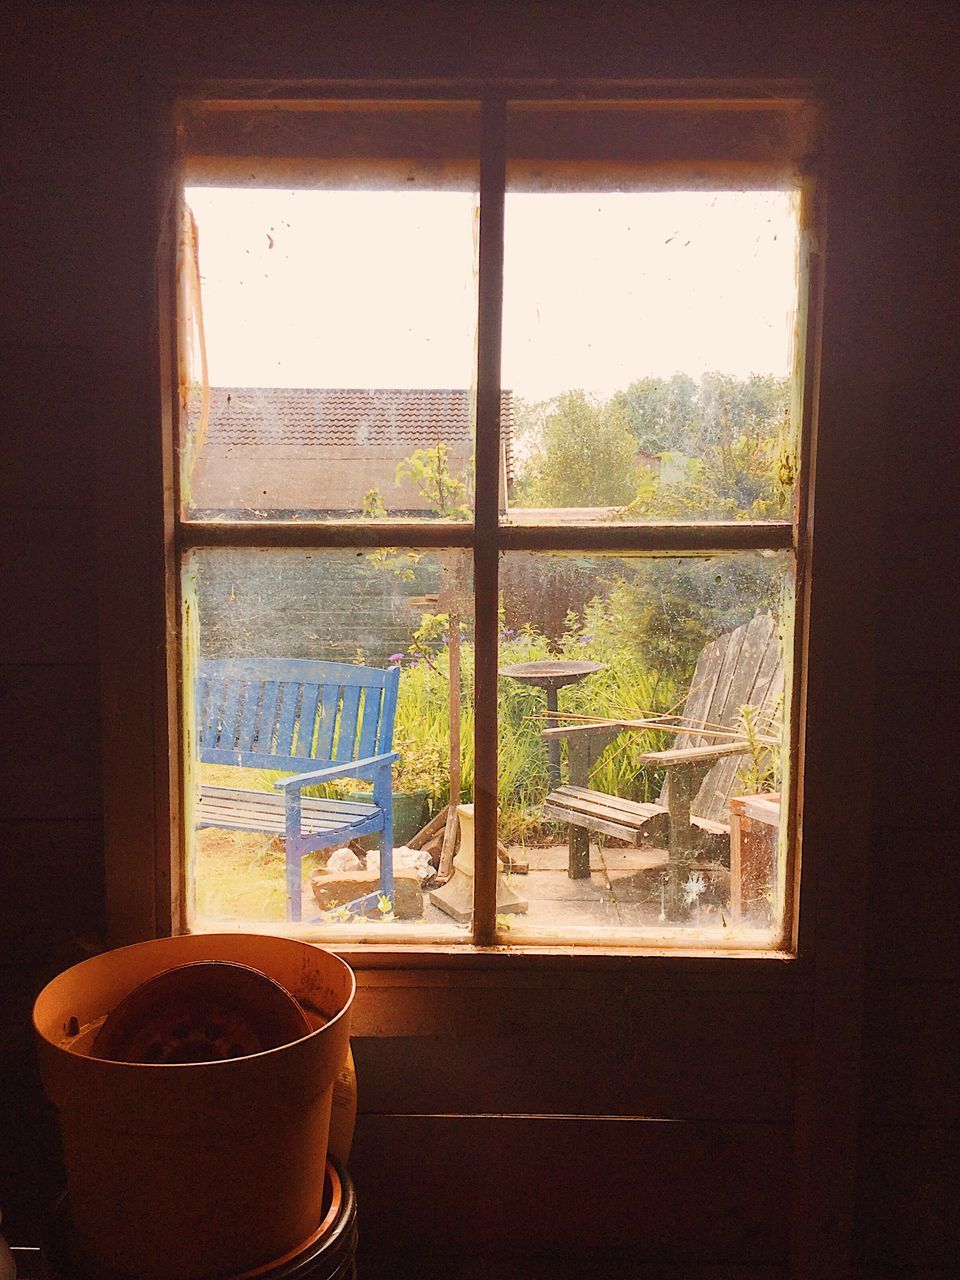 window, indoors, day, no people, potted plant, home interior, balcony, refreshment, window sill, plant, built structure, architecture, tree, nature, close-up